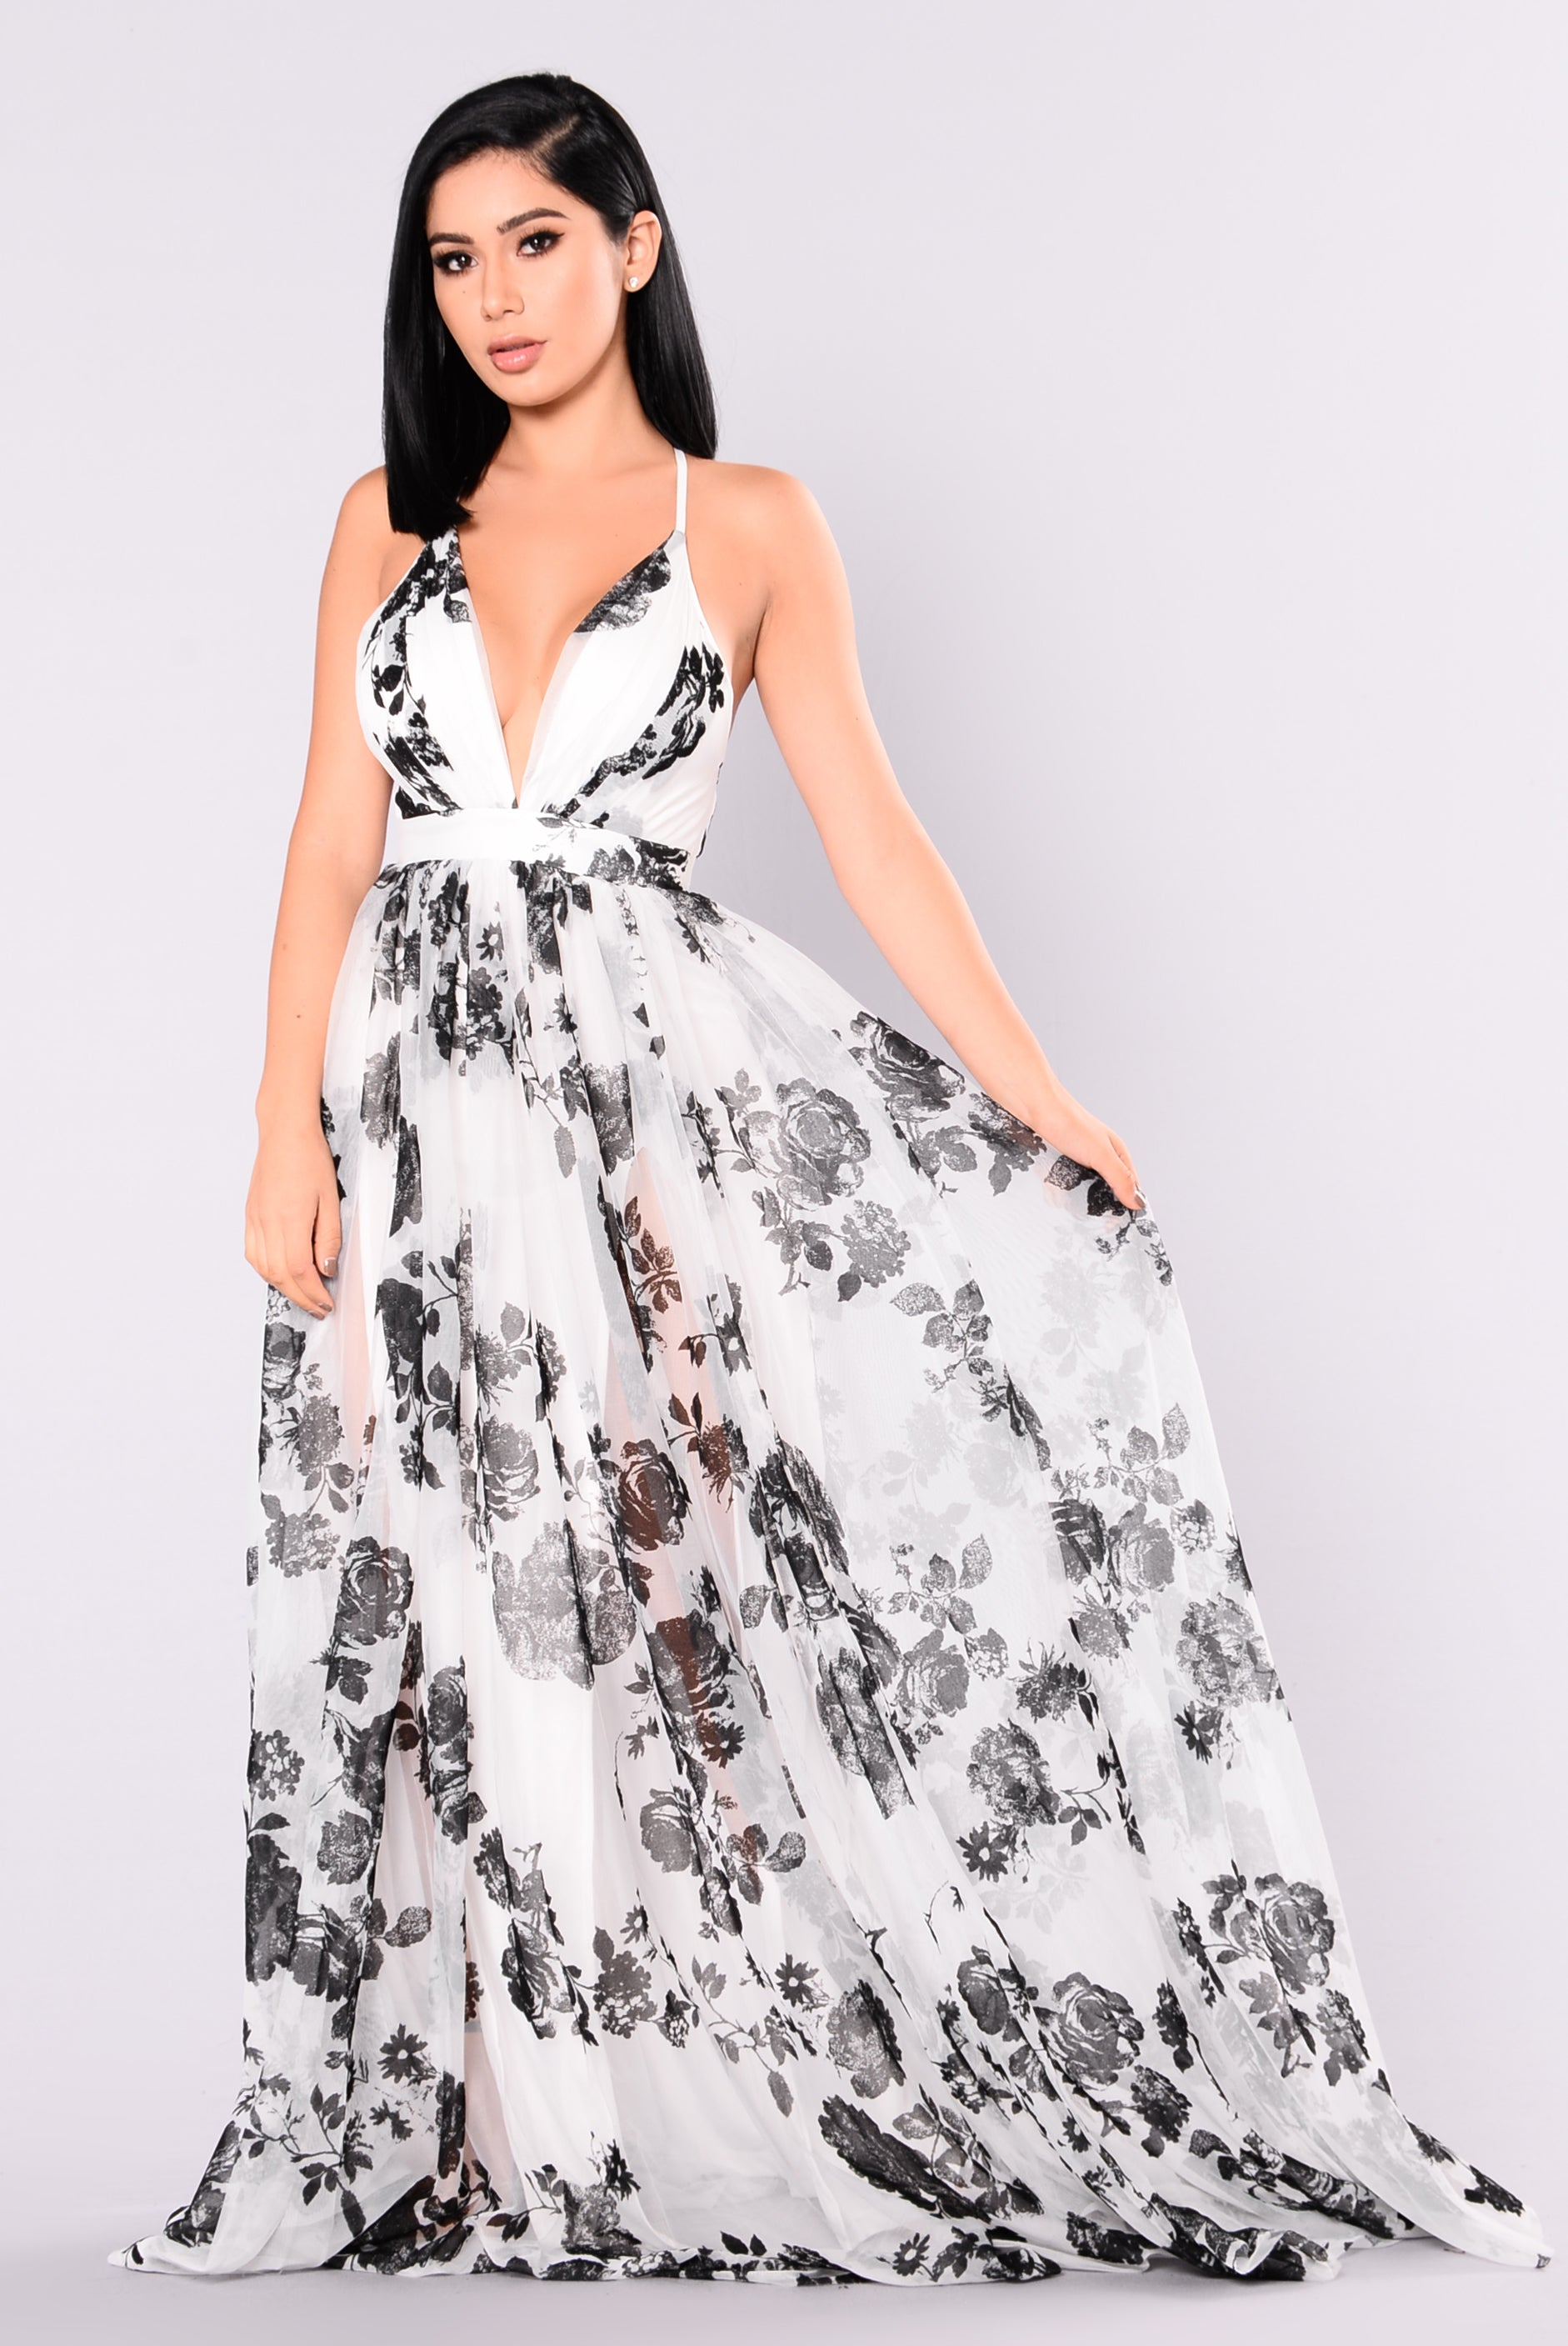 d604f6467b Limited Addiction Mesh Floral Dress - White Black